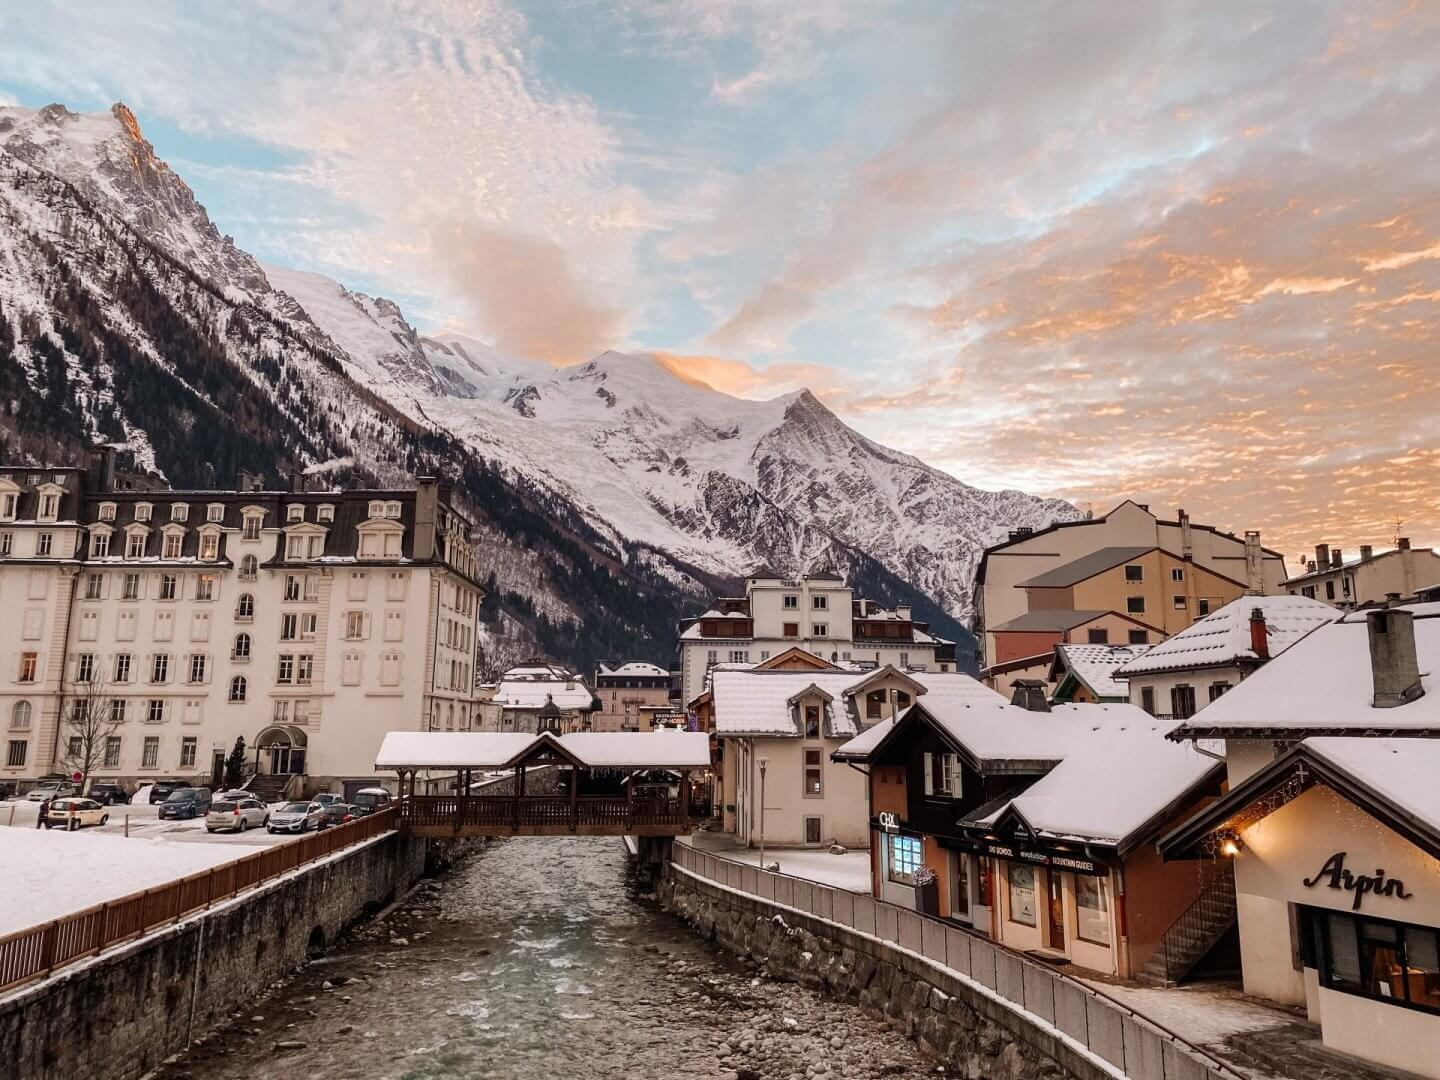 image of the town of Chamonix, France